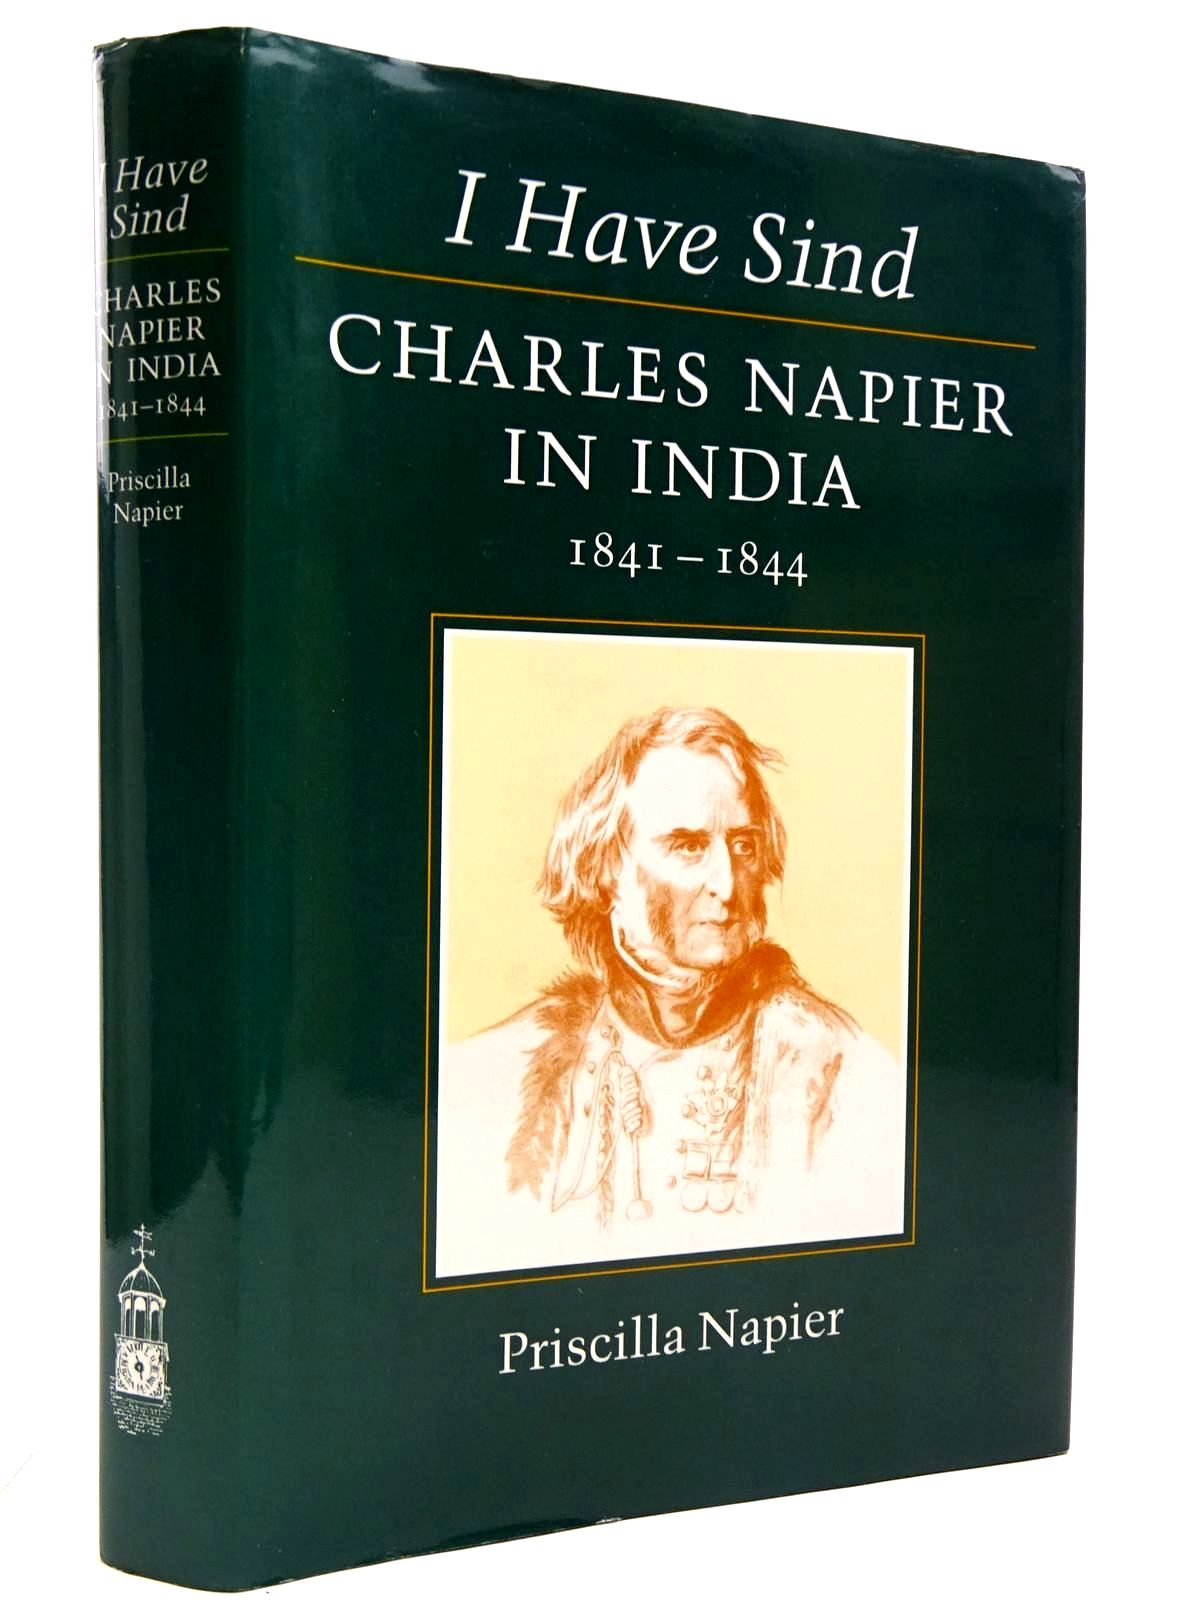 Photo of I HAVE SIND CHARLES NAPIER IN INDIA 1841-1944 written by Napier, Priscilla published by Michael Russell (STOCK CODE: 2131145)  for sale by Stella & Rose's Books